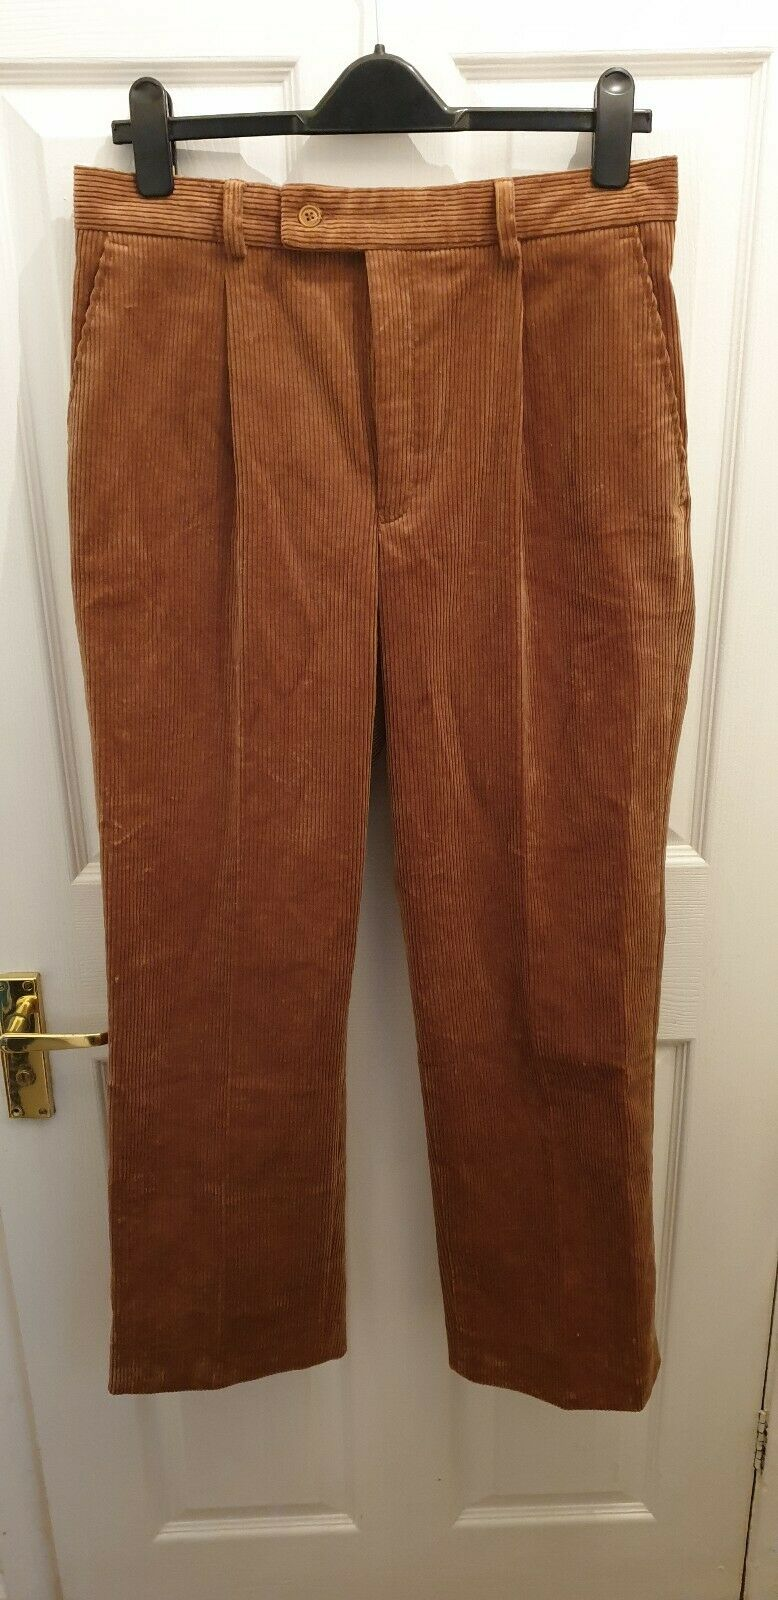 JAMES MEADE LIMITED MENS BROWN NAVY CORDUROY TROUSERS  W32 L31